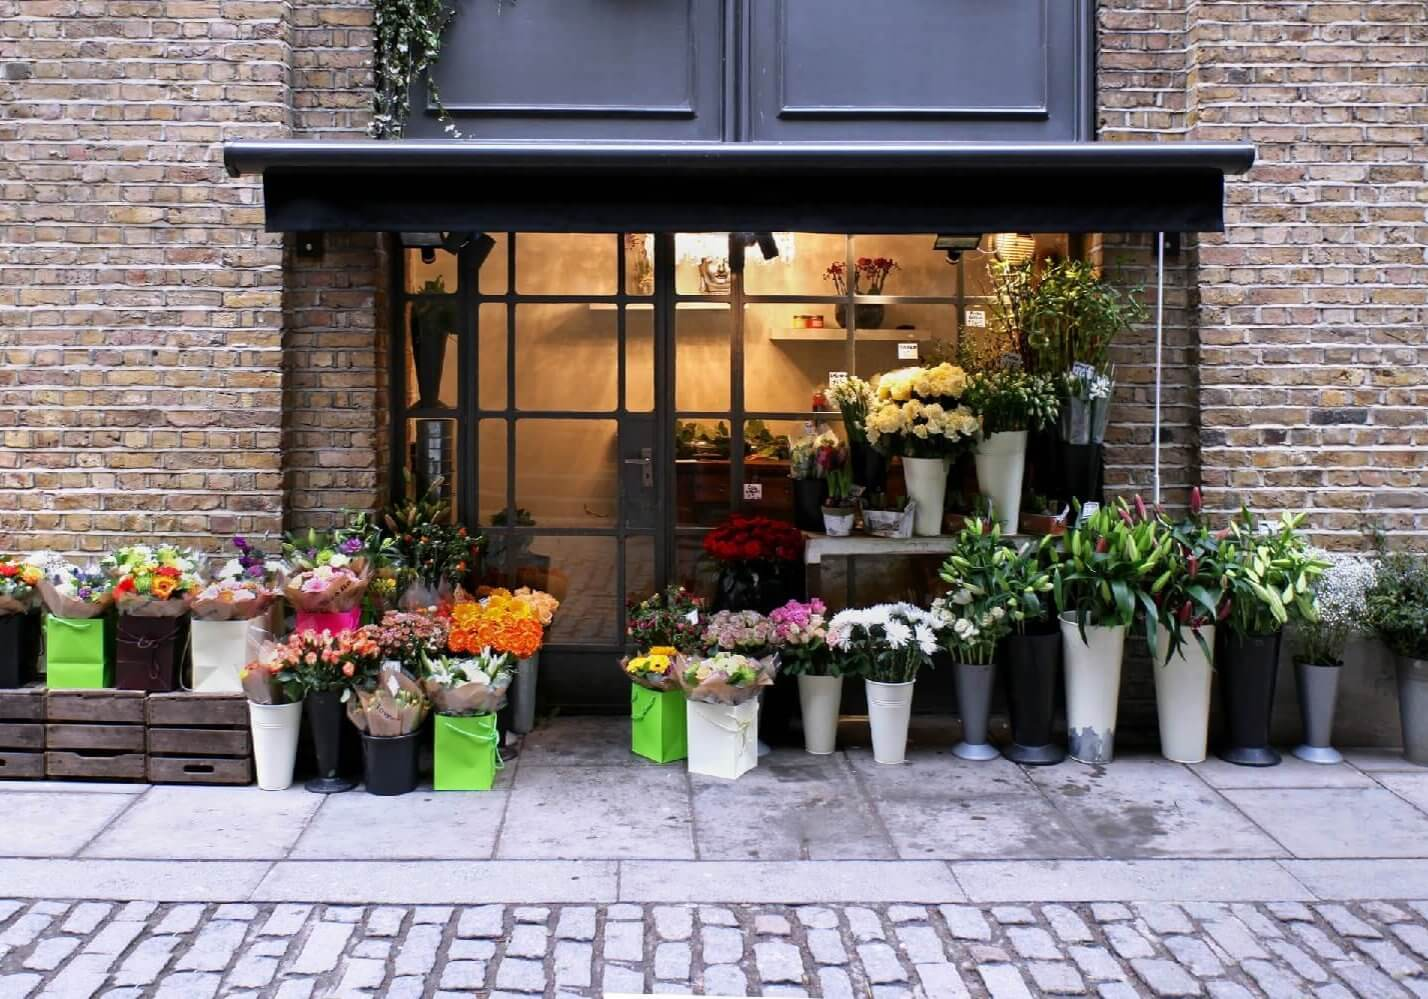 Flower shop exterior in street with brickwall facade